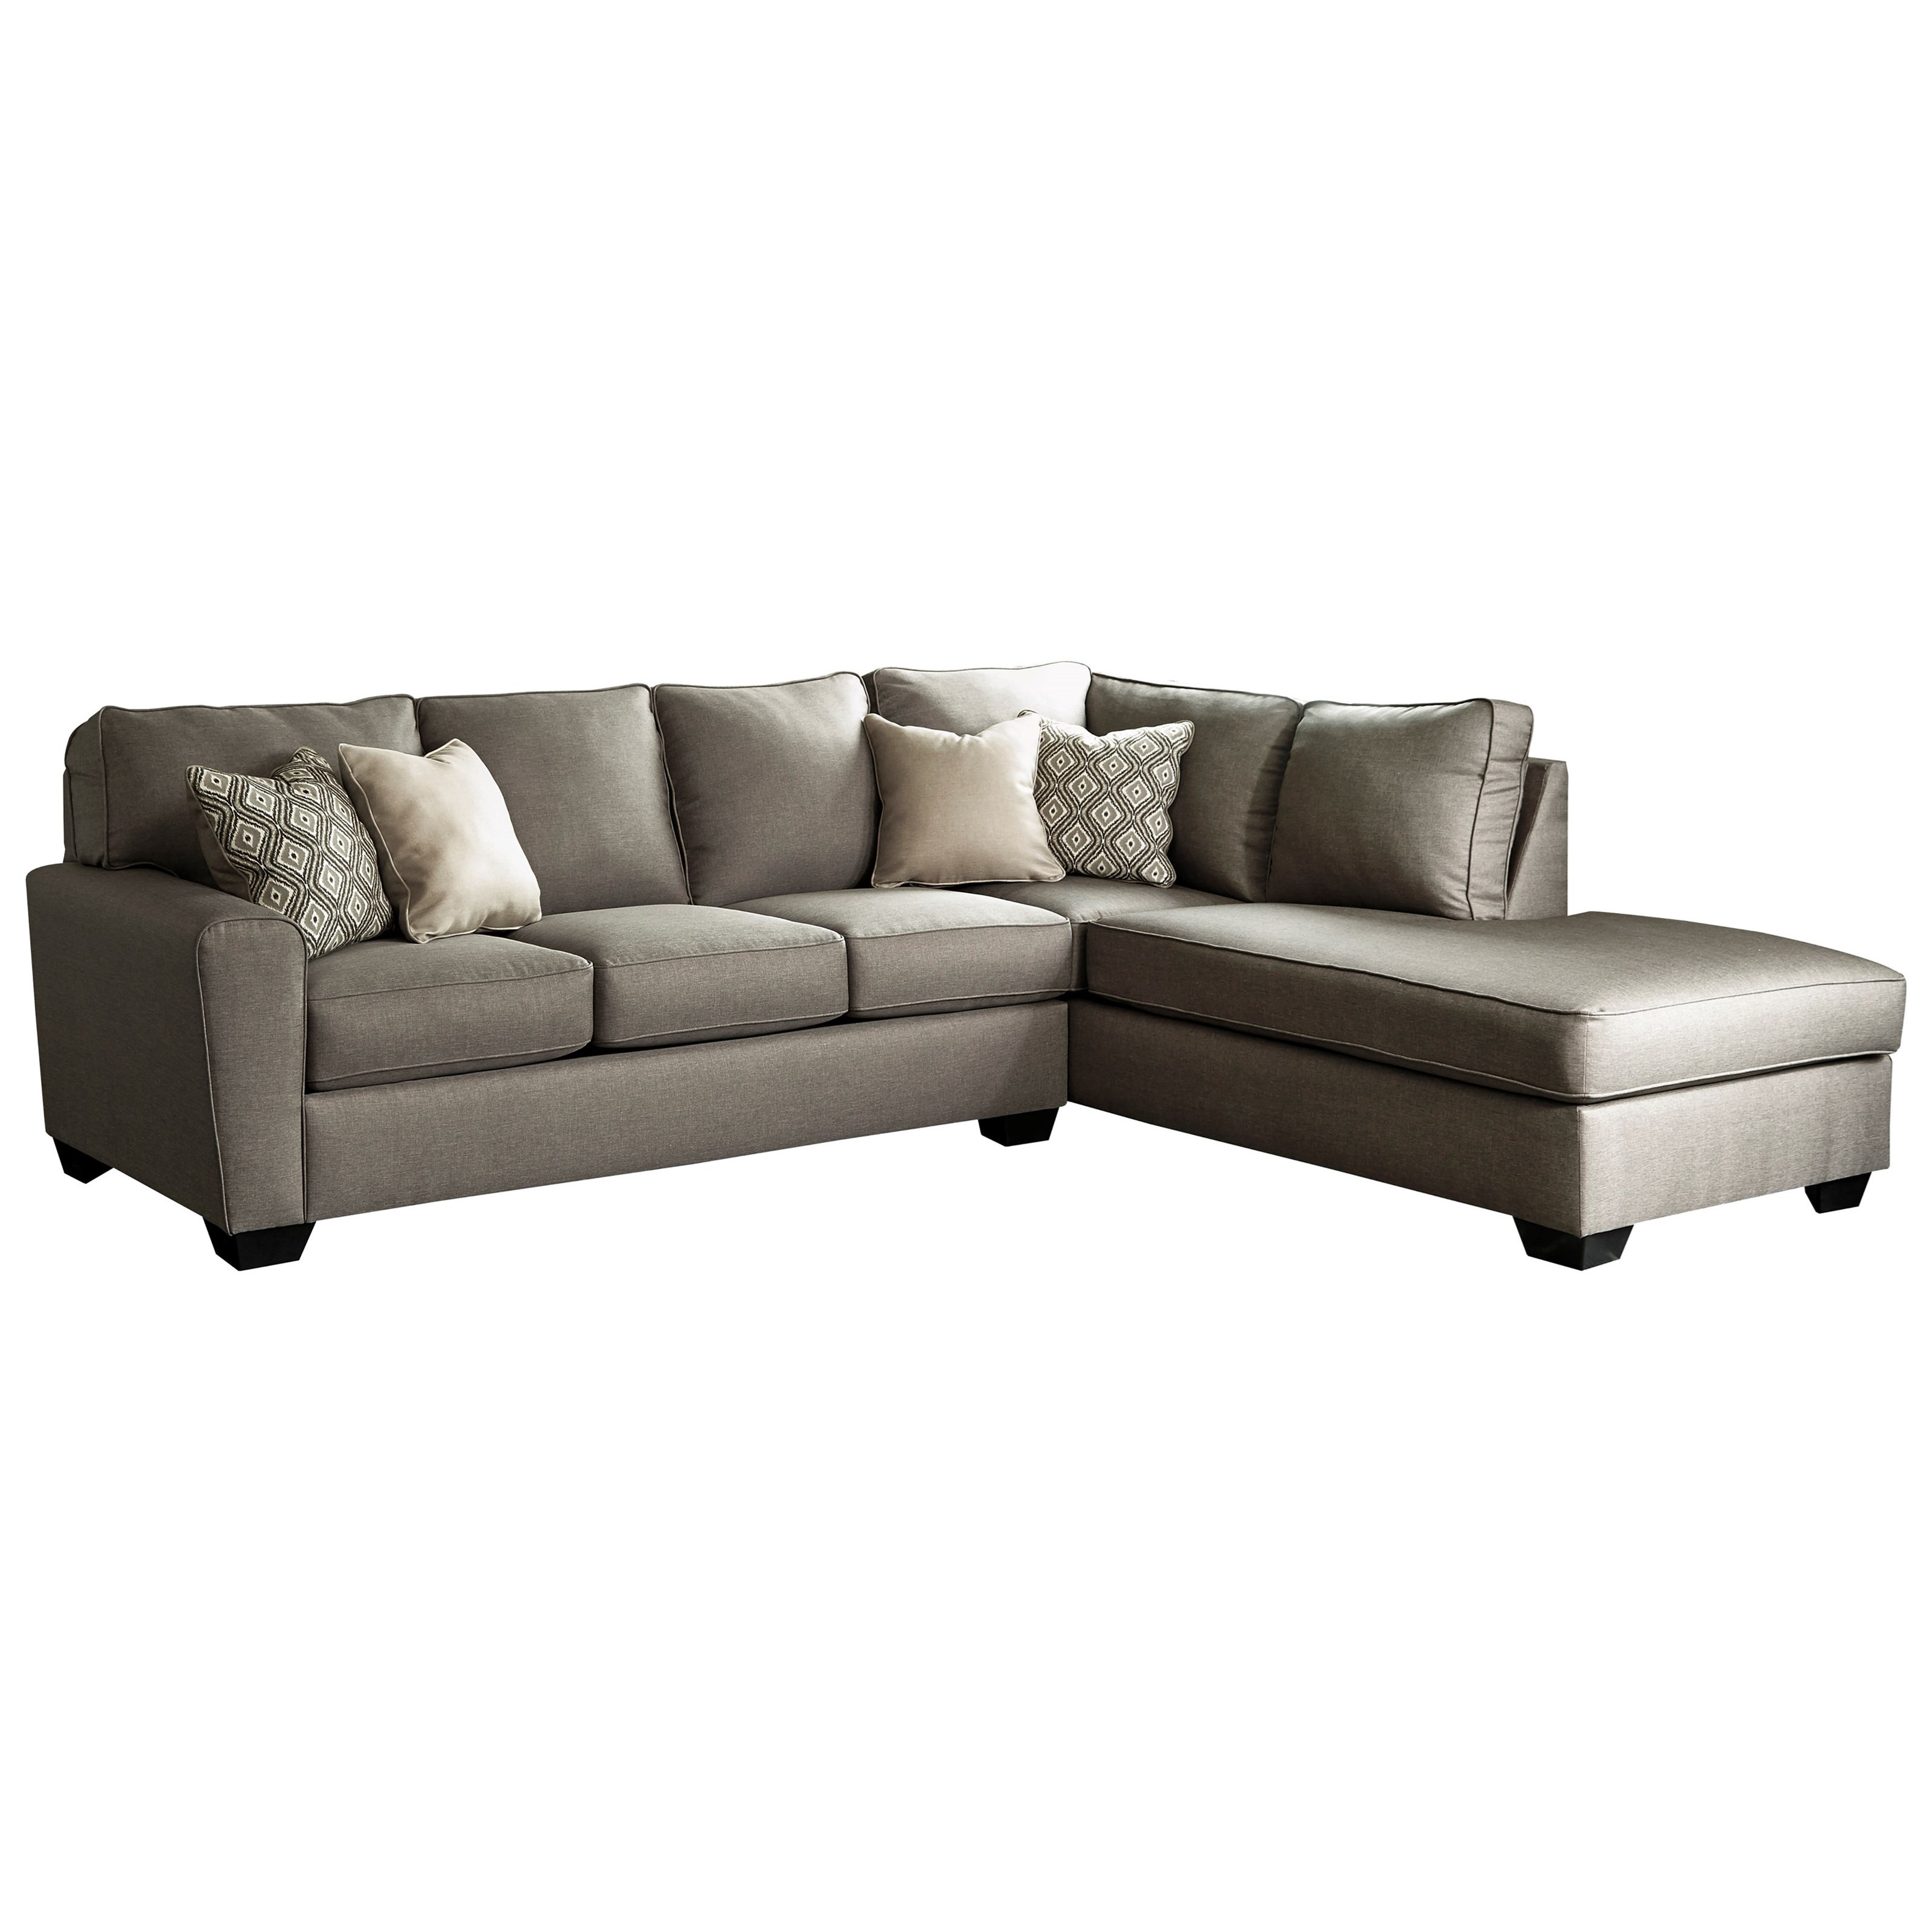 benchcraft by ashley calicho contemporary sectional with right chaise royal furniture. Black Bedroom Furniture Sets. Home Design Ideas